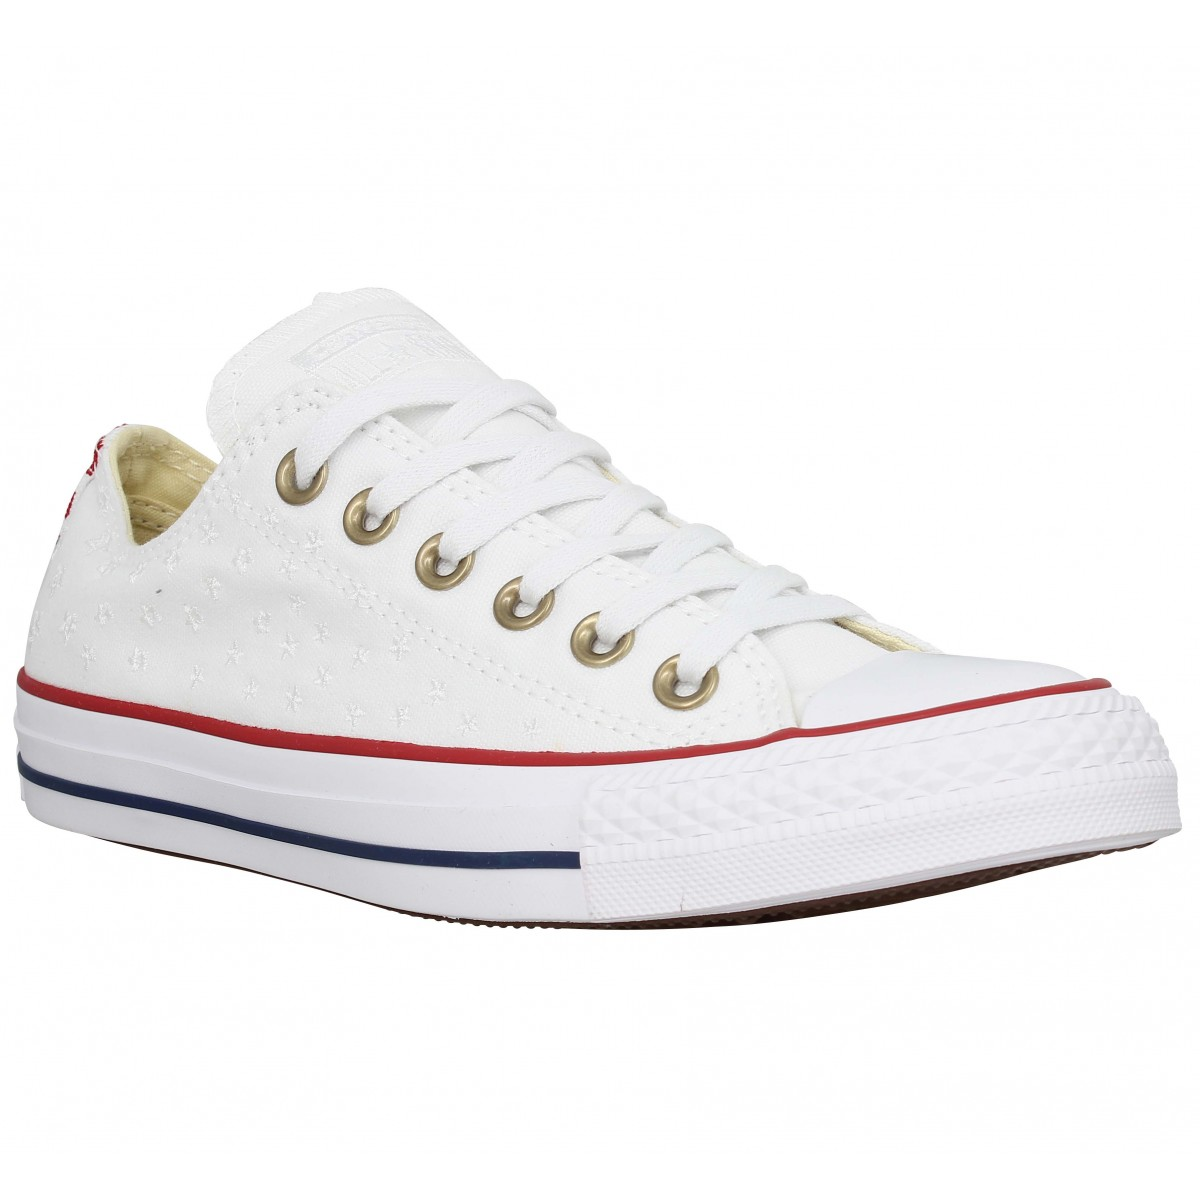 Baskets CONVERSE Chuck Taylor All Star toile brodee Femme Blanc